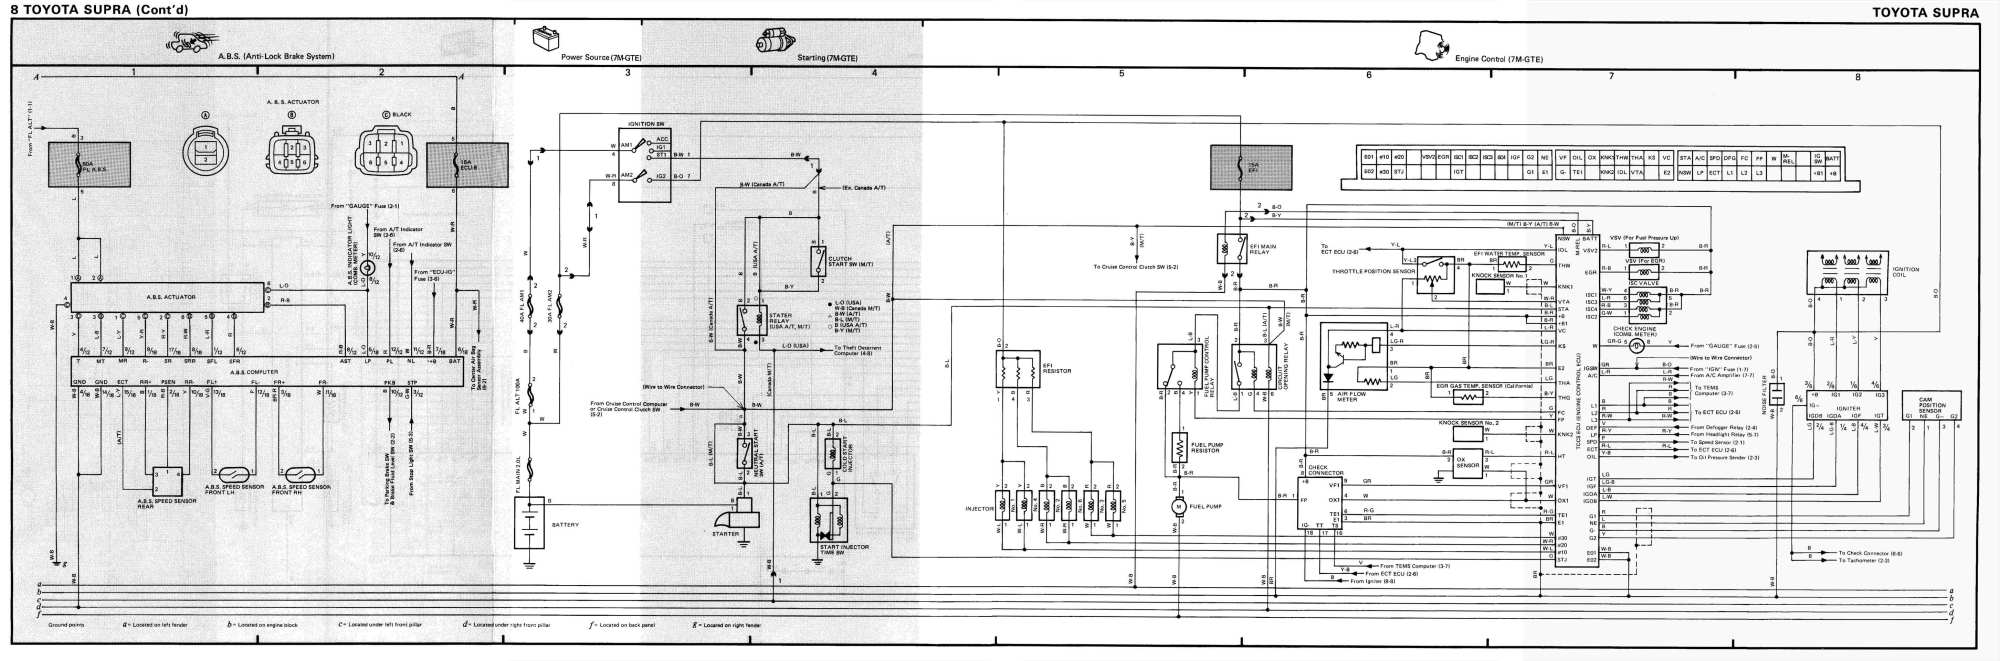 hight resolution of 1987 toyota supra vacuum diagram wiring schematic wiring diagram sch 87 supra vacuum diagram wiring schematic